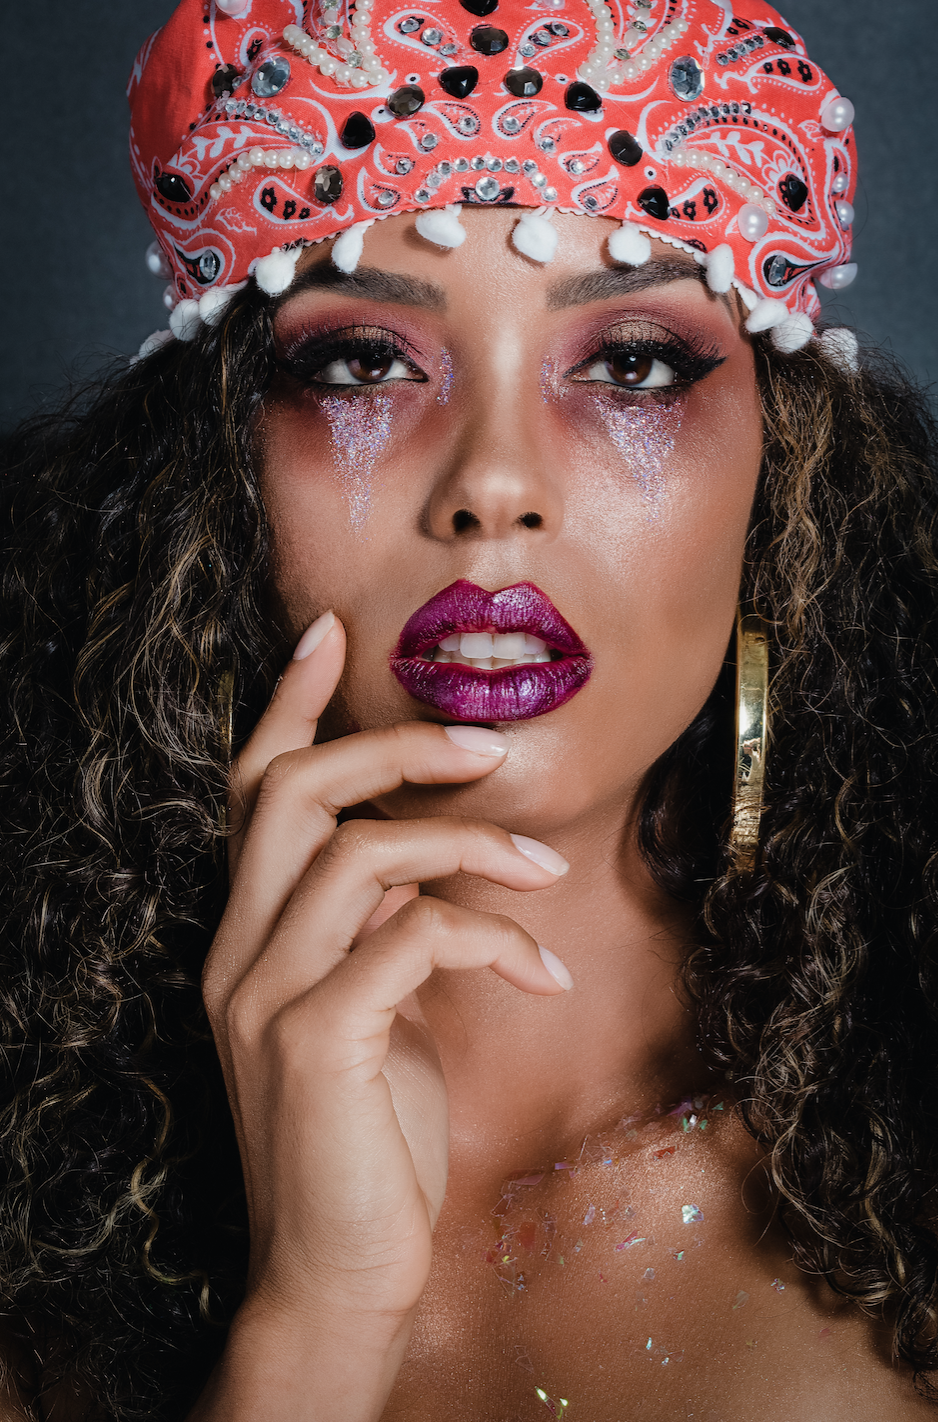 Fortune Teller - Out of all the costume possibilities, the fortune teller look may be the easiest to achieve for the most casual makeup user. If you have already mastered a basic smokey eye look,the fortune teller costume is for you!